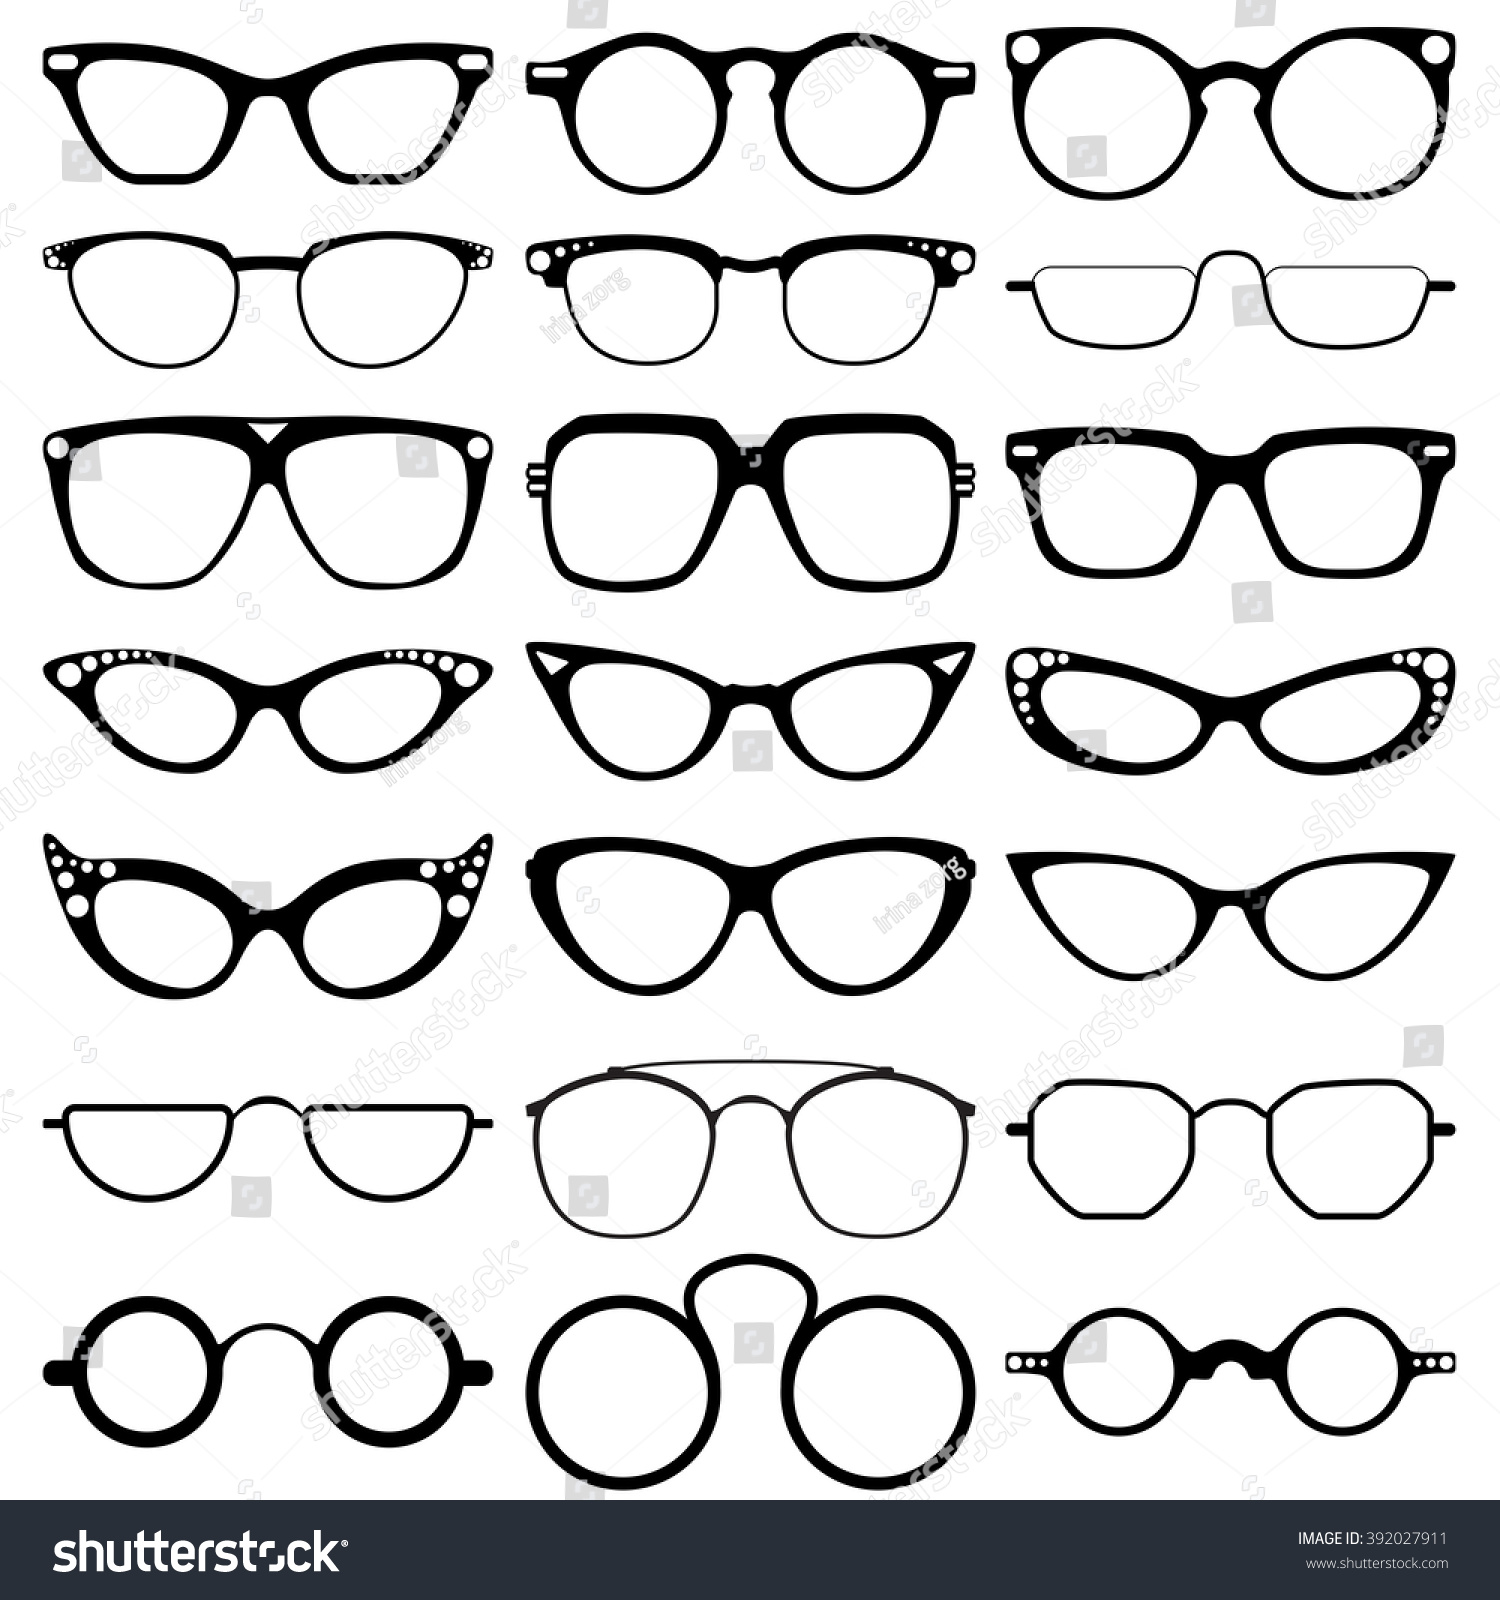 Royalty-free Glasses model icons, man, women frames… #392027911 ...